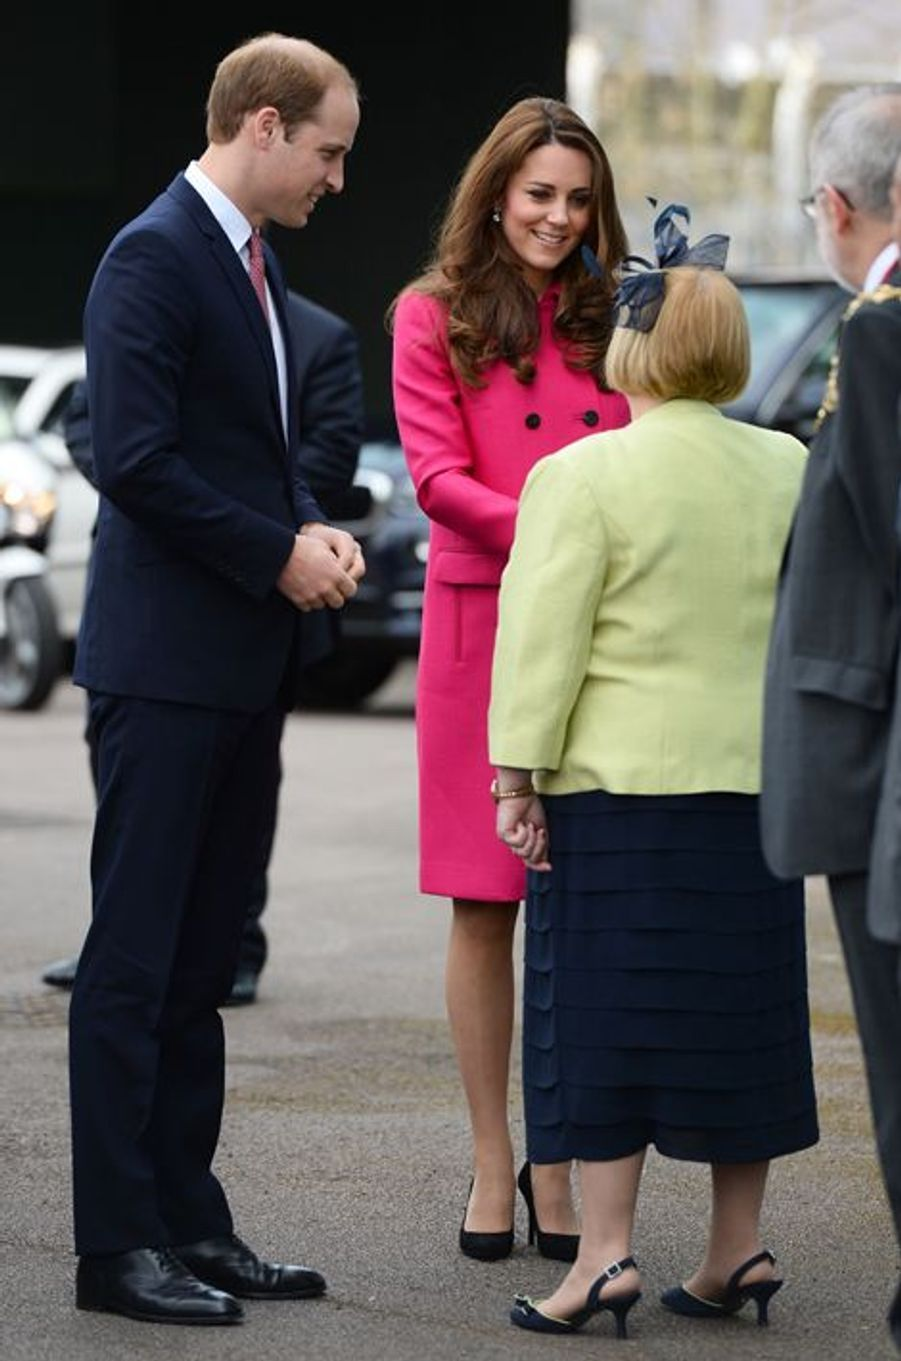 Kate née Middleton et le prince William arrivent au Stephen Lawrence Centre à Londres, le 27 mars 2015